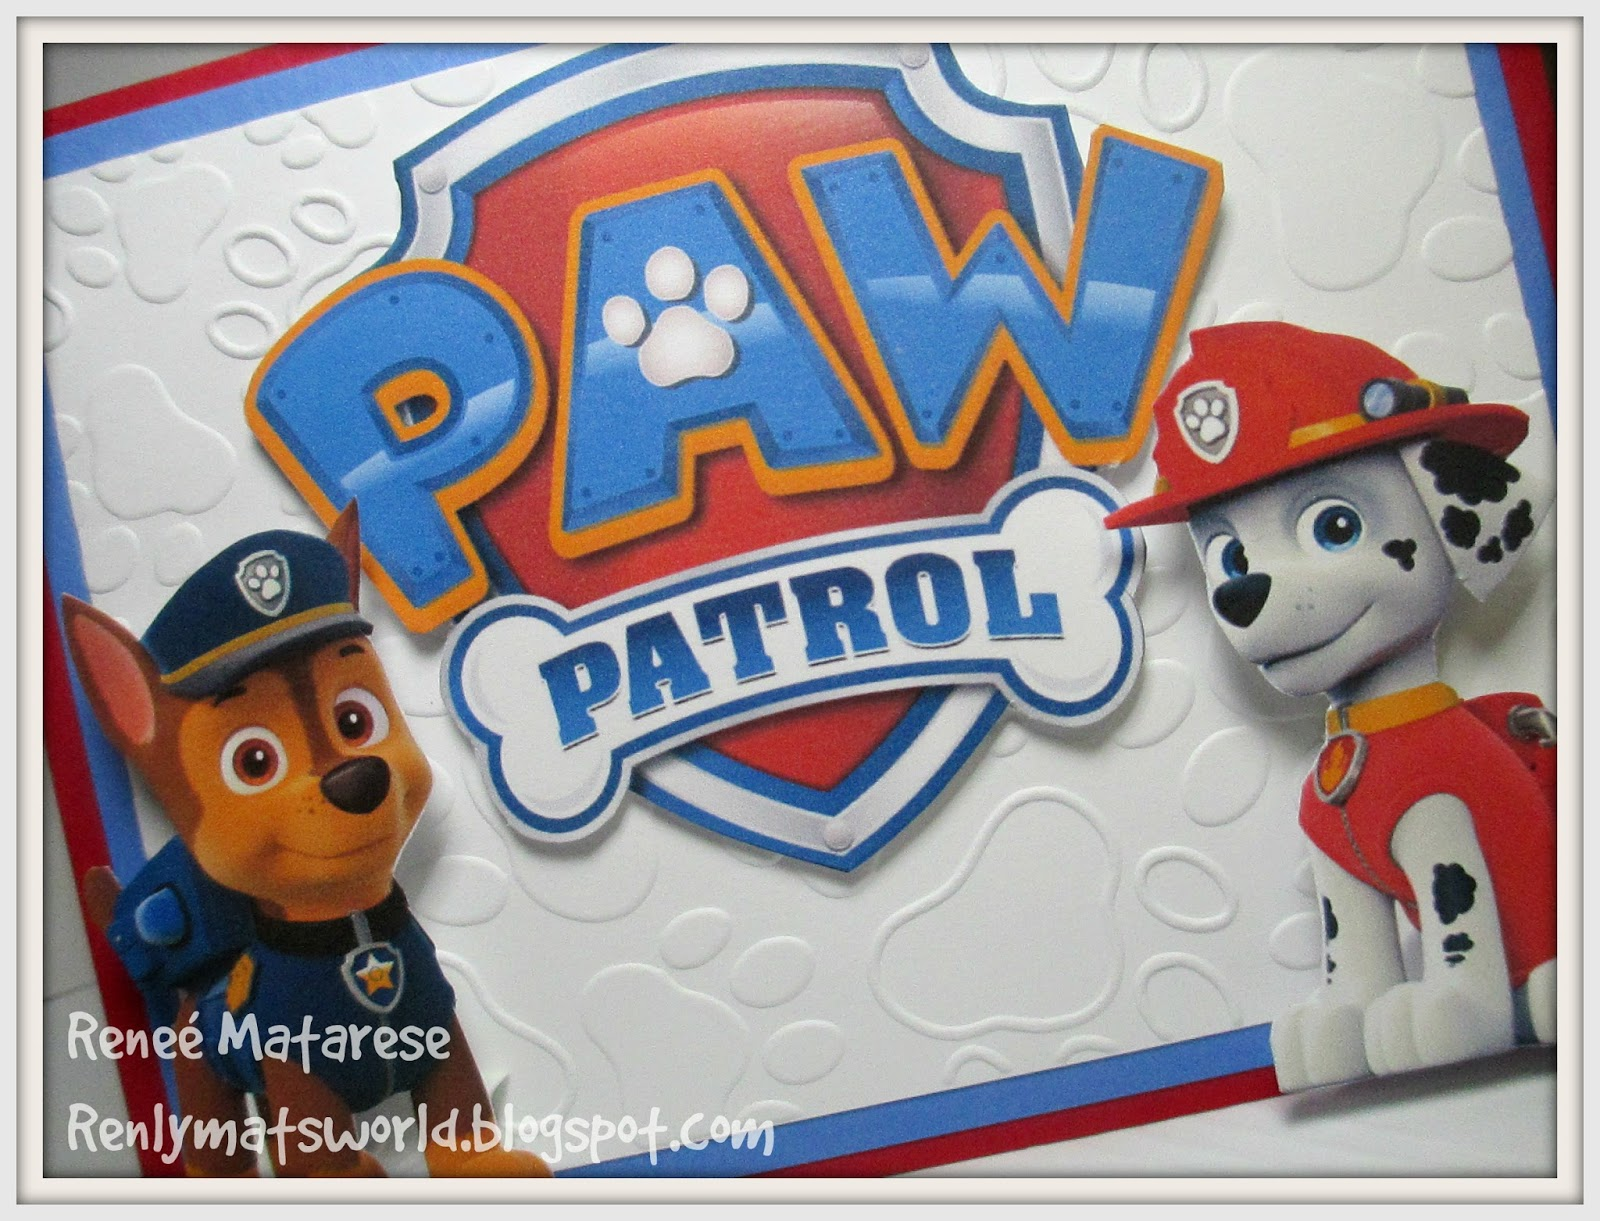 image about Paw Patrol Printable Birthday Card referred to as Paw Patrol Birthday Card: Paw Patrol Birthday Card Paw